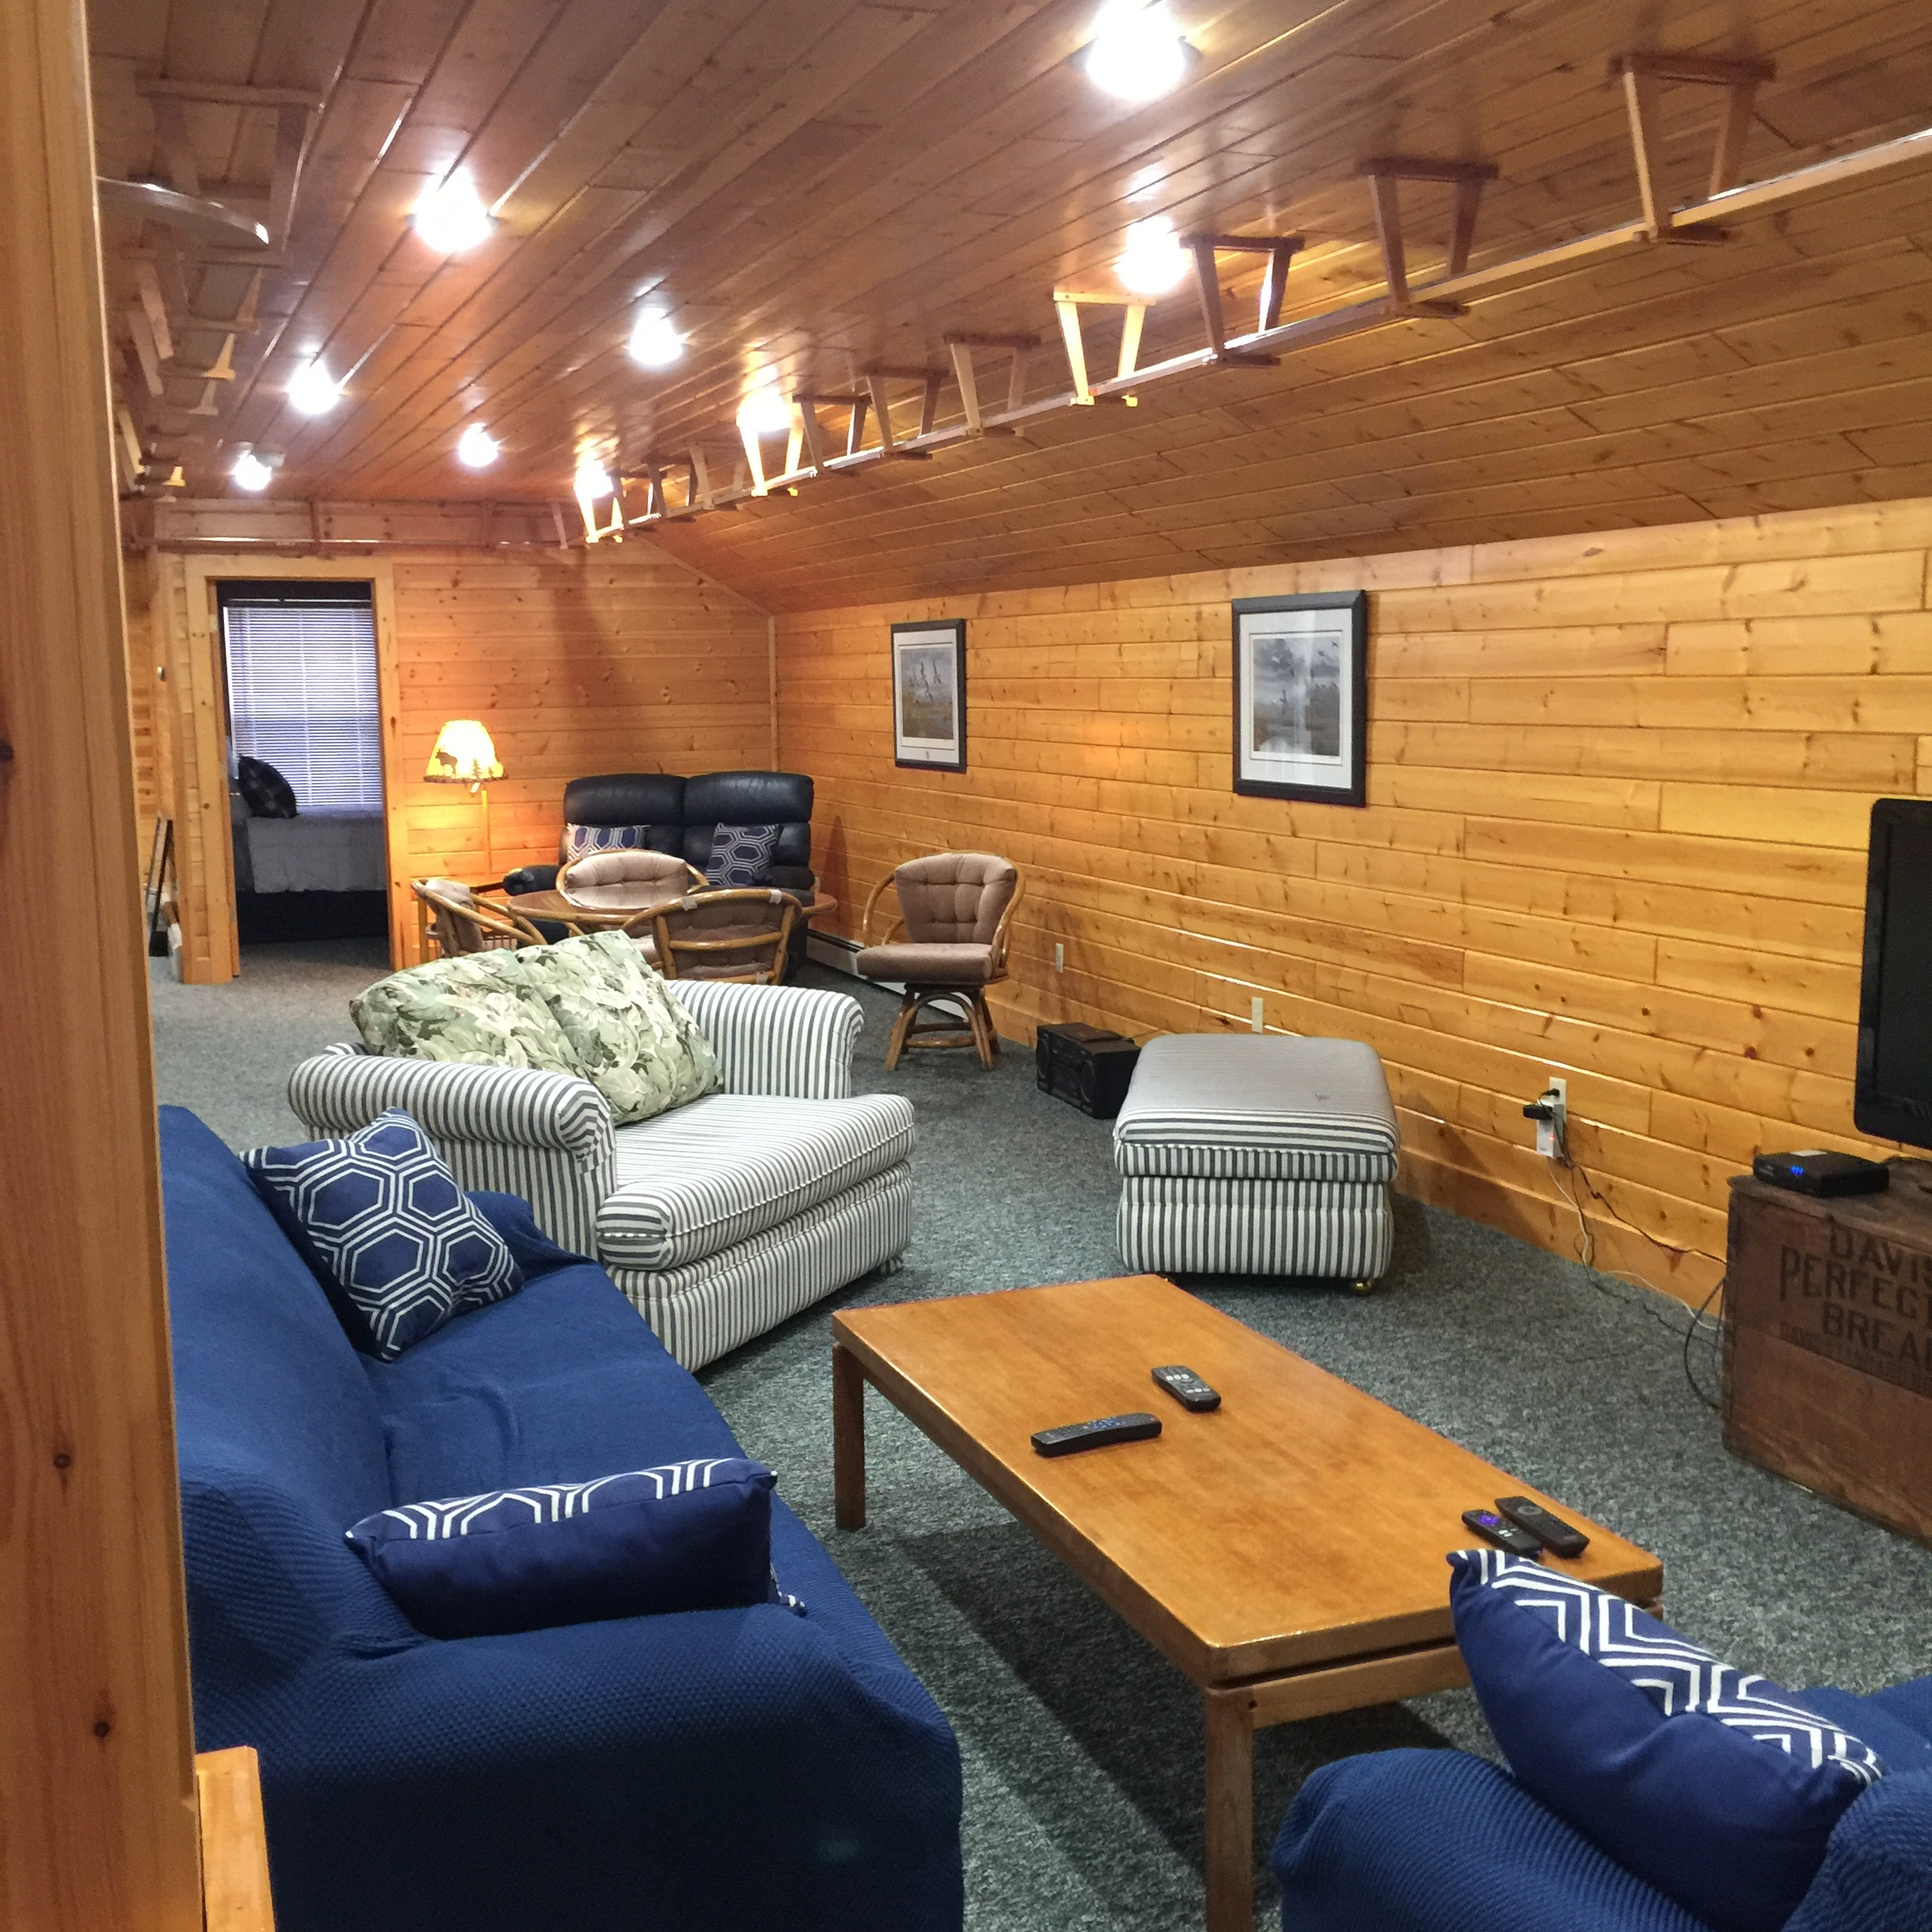 Seating area with cable TV at Torch Lake Lodge. All areas have high speed internet.